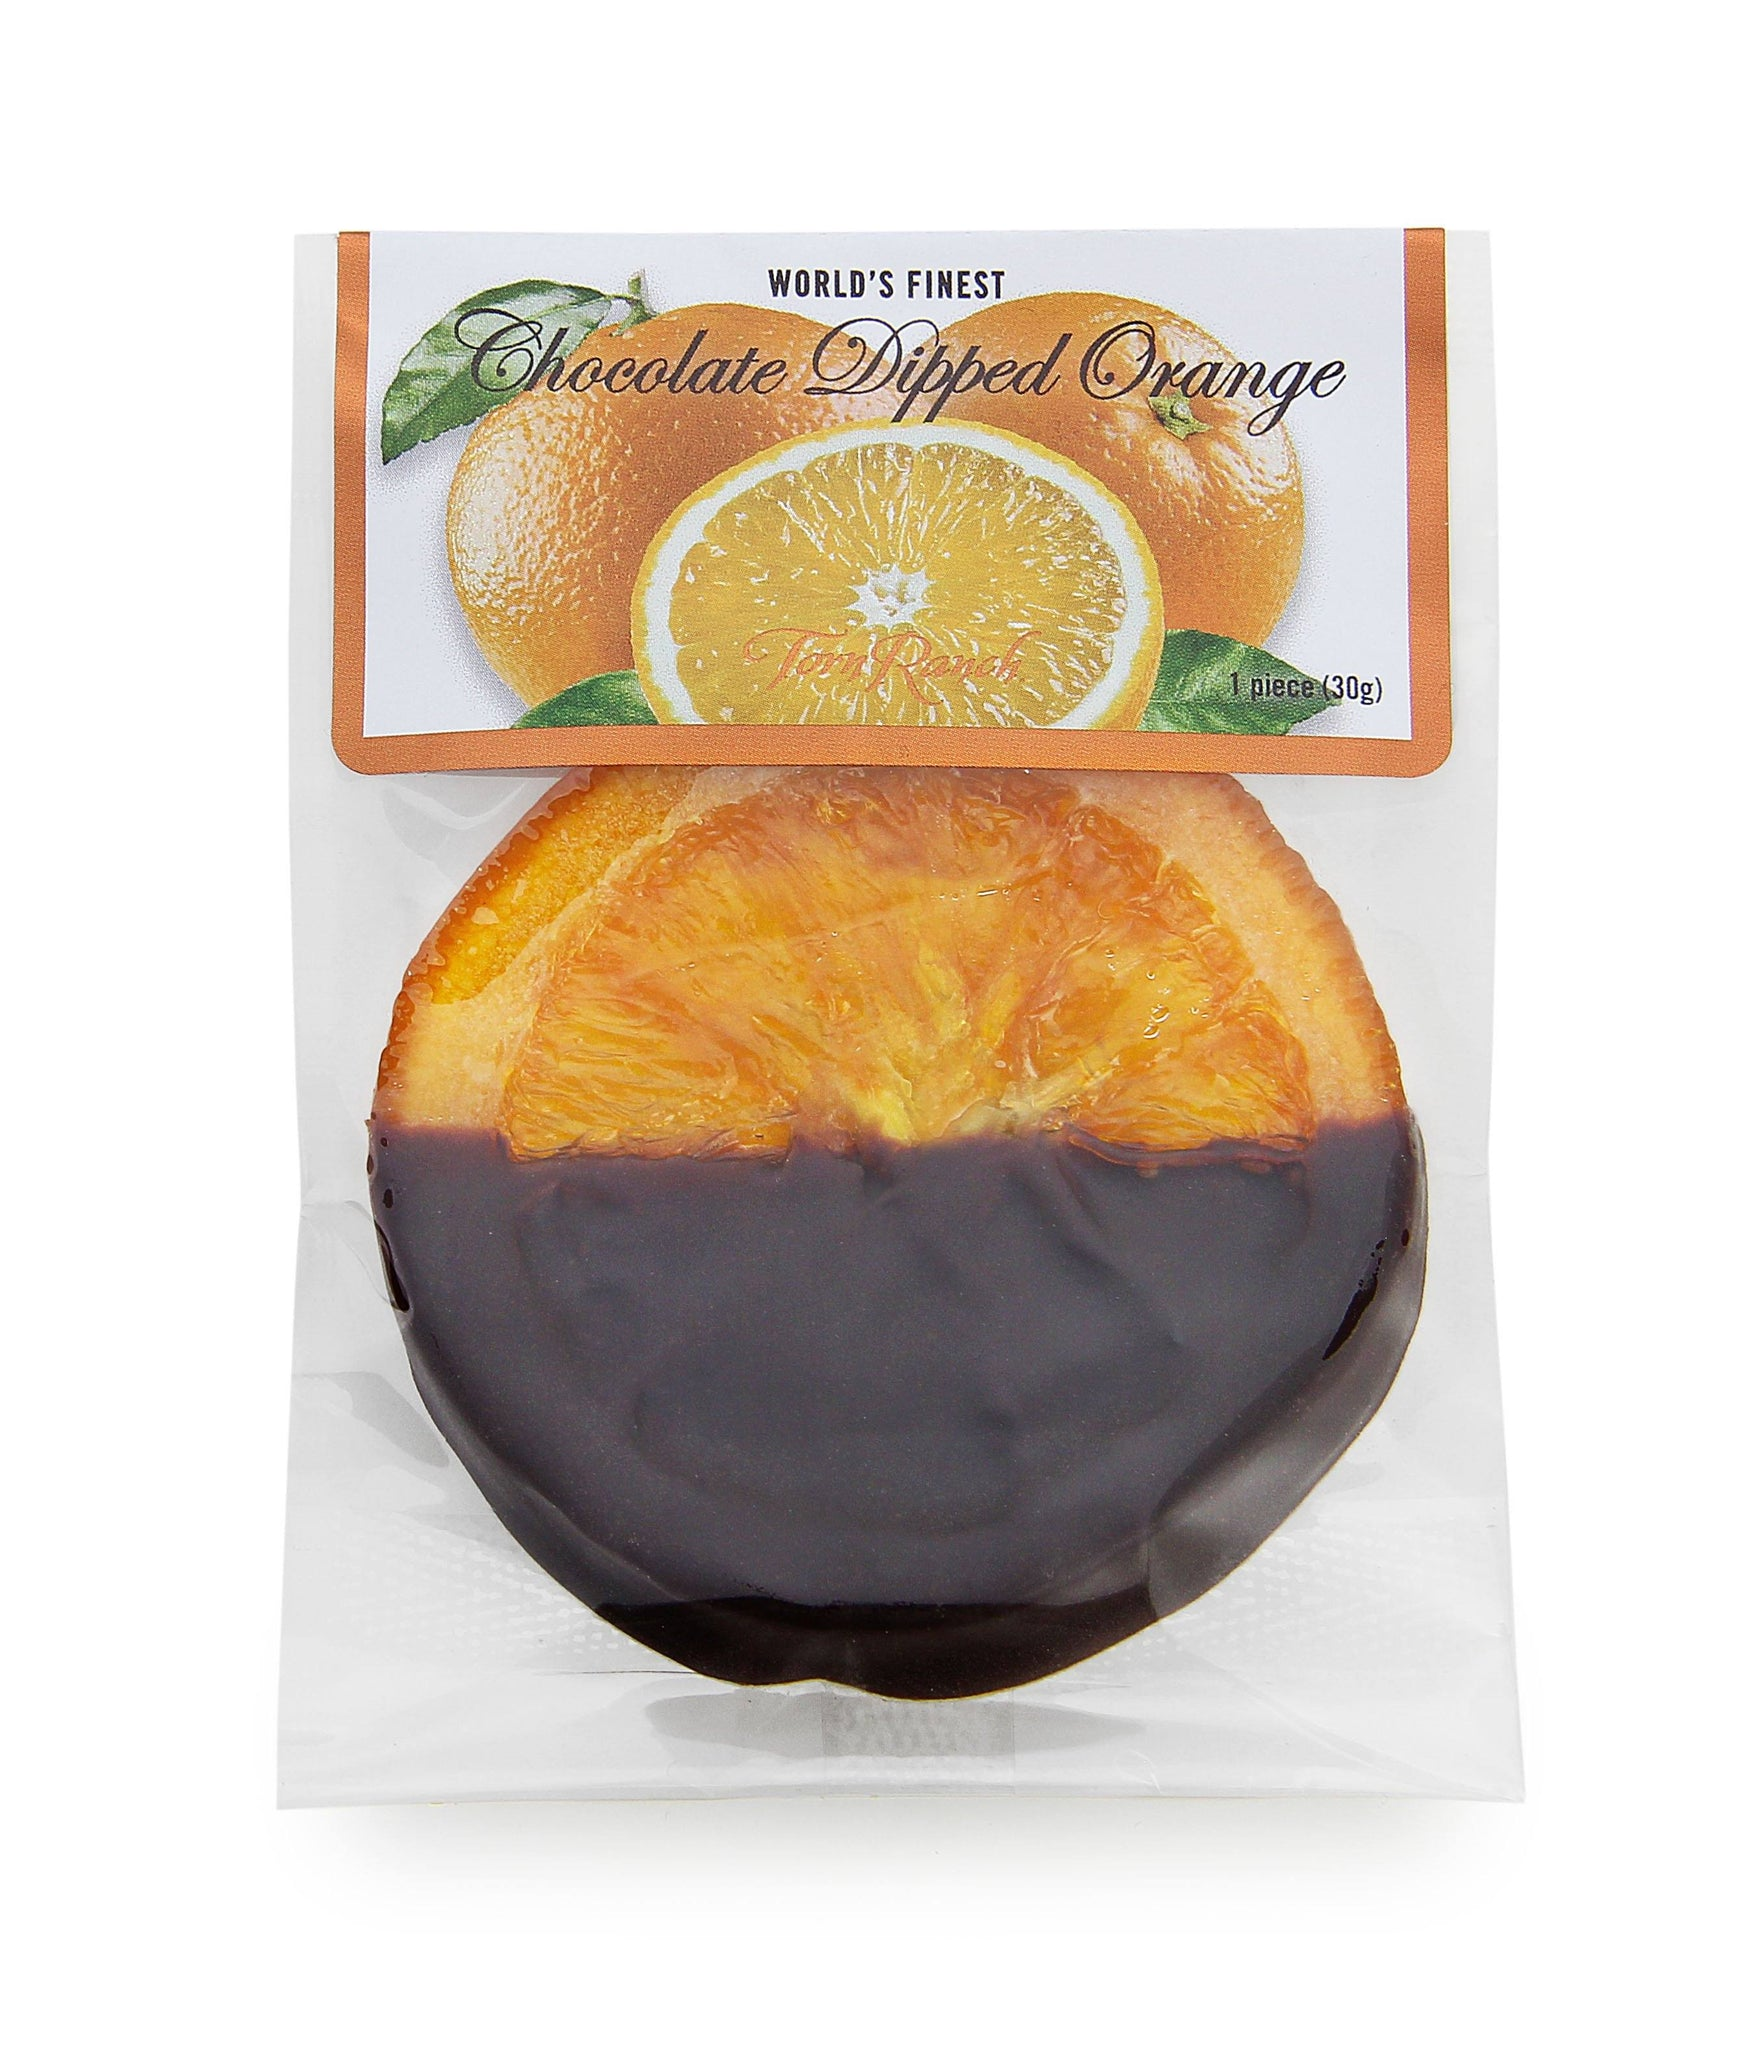 Signature Reserve Chocolate Dipped Orange Slice - 15 slice pack in Gourmet Chocolates and Toffee - Individually wrapped chocolate dipped orange.